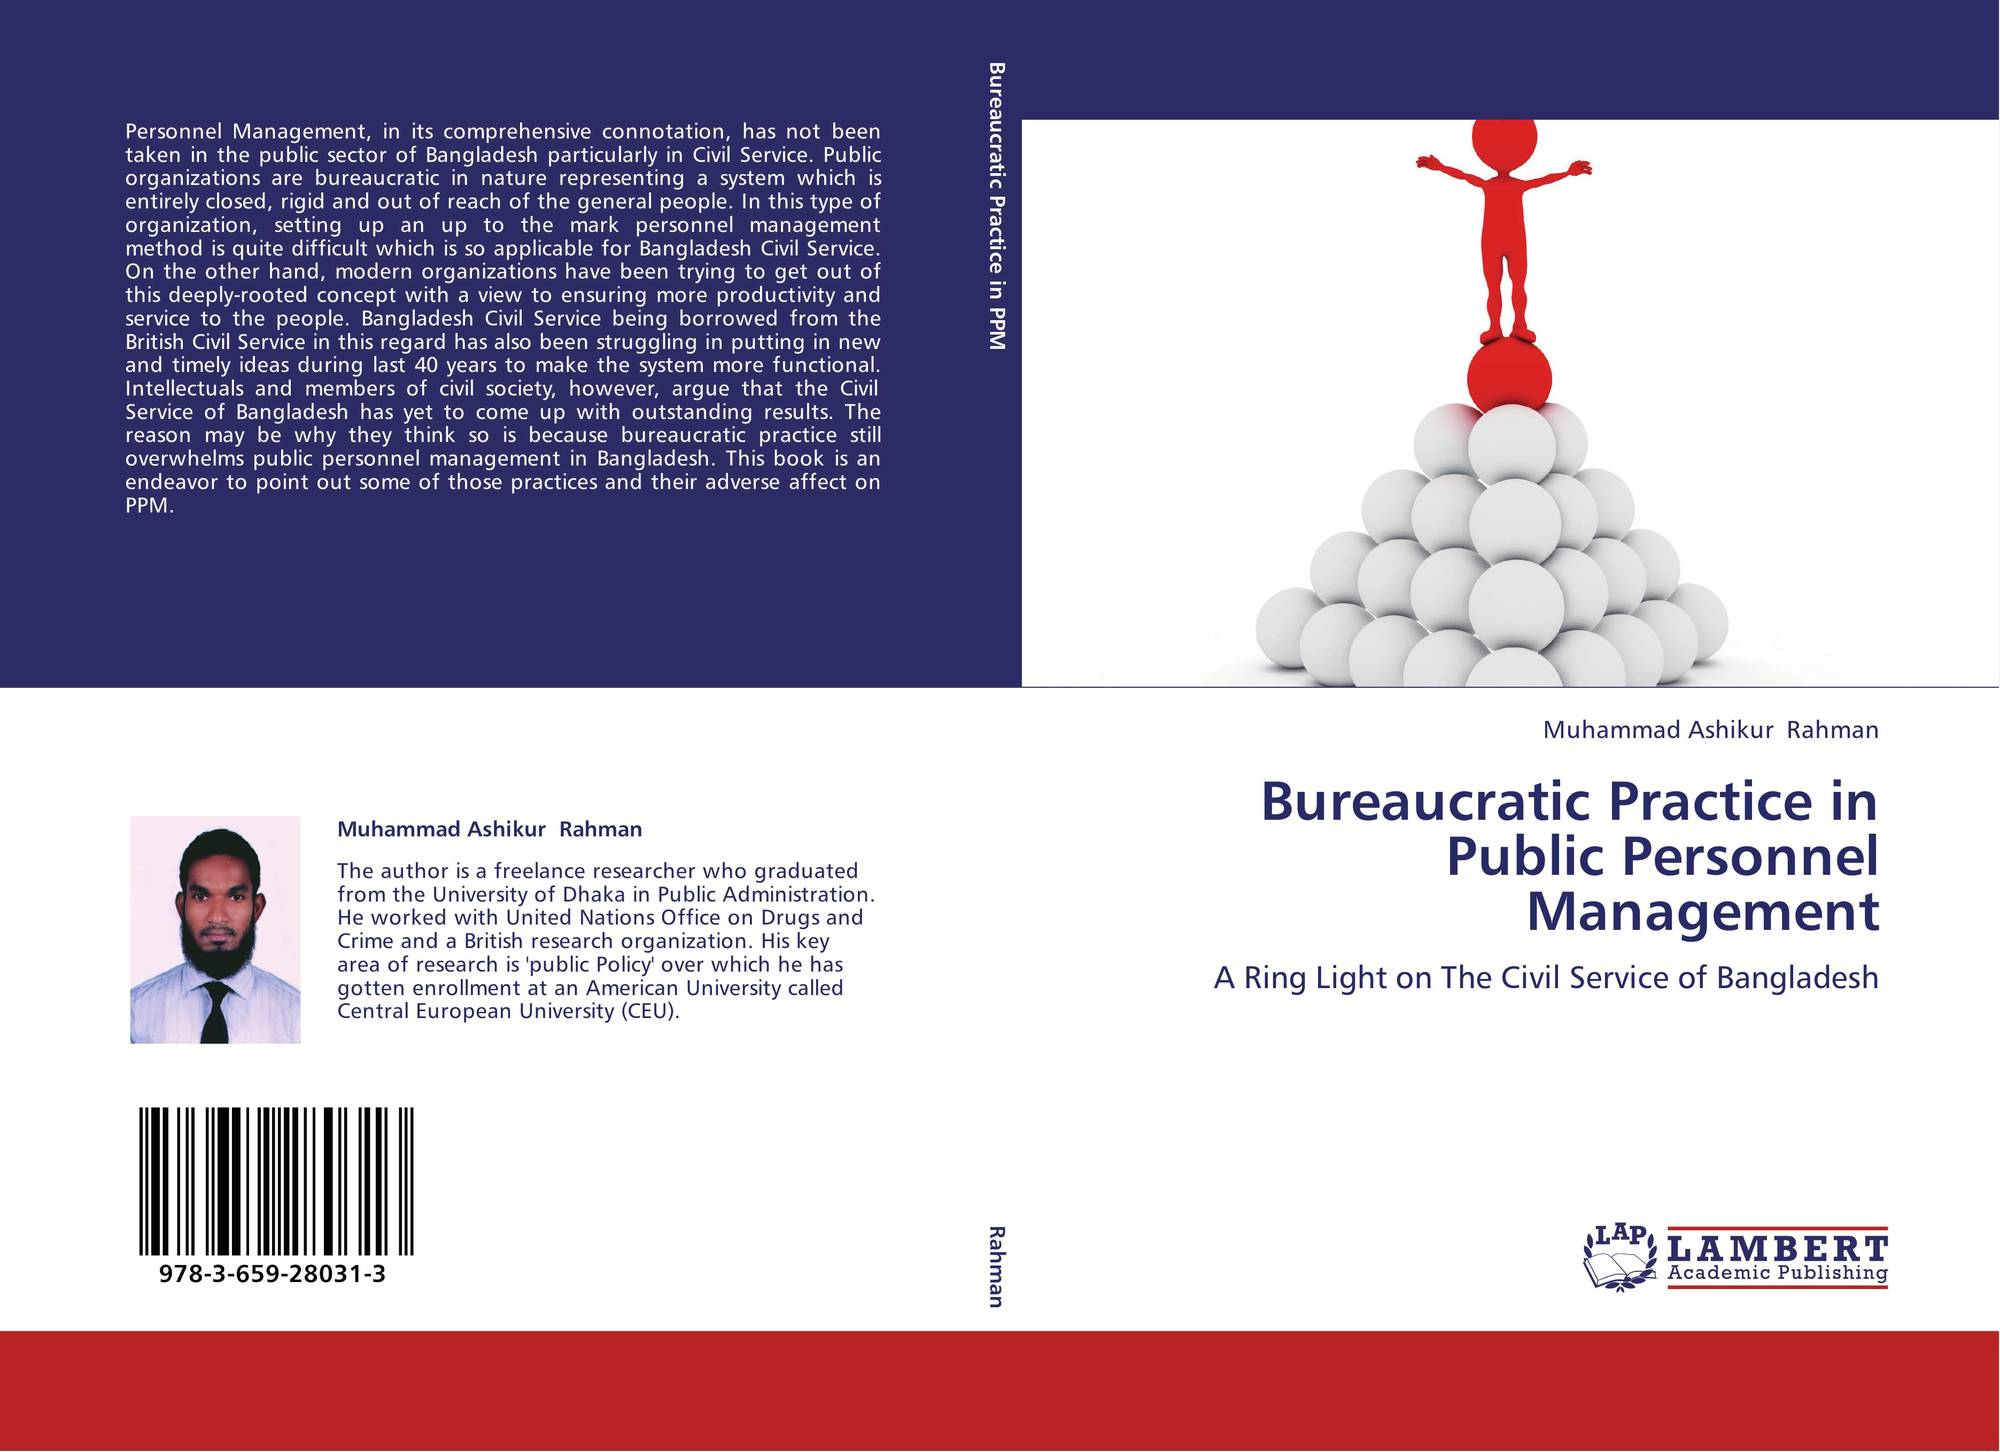 post bureaucratic 3 - post-bureaucratic structures the organizations that follow post-bureaucratic structures still inherit the strict hierarchies, but open to more modern ideas and methodologies they follow techniques such as total quality management (tqm), culture management, etc.